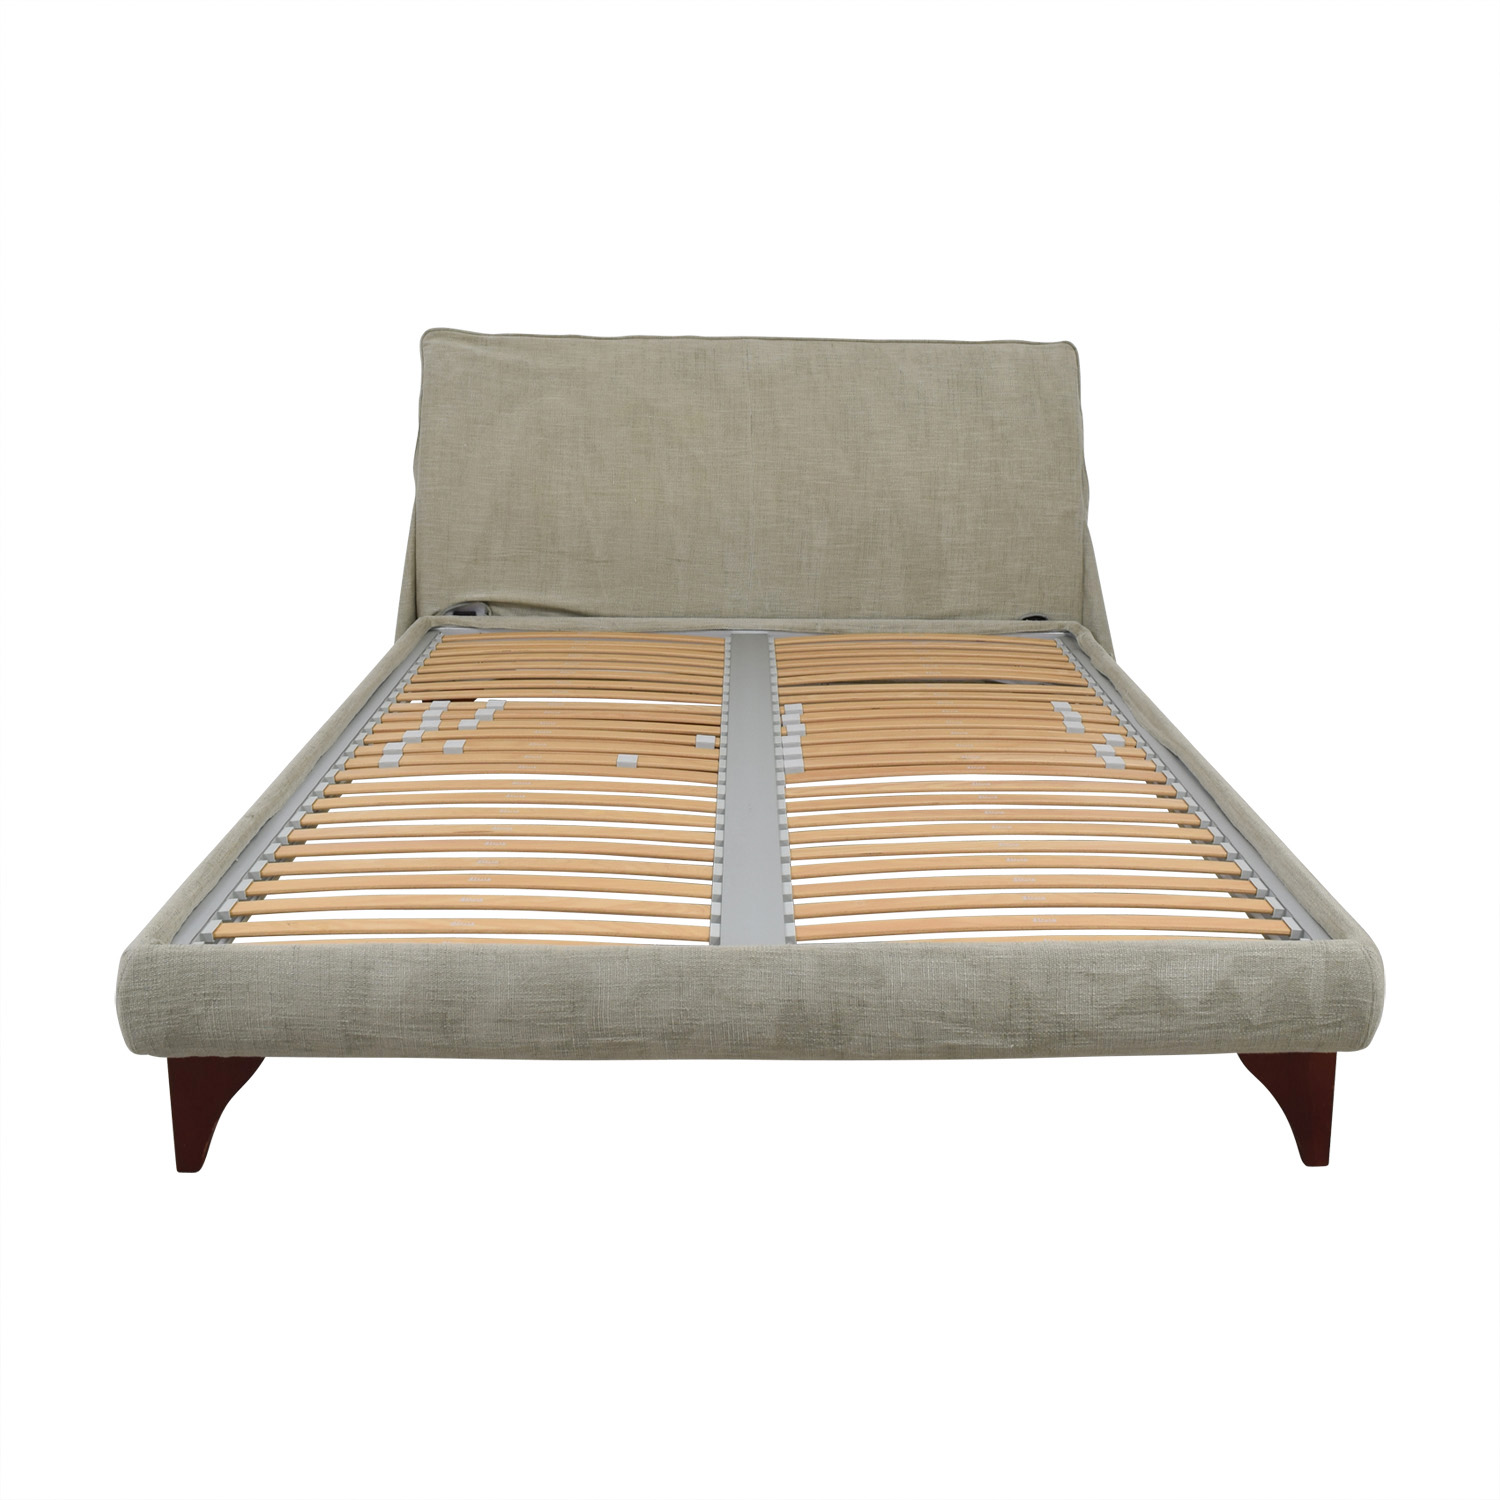 Flou Flou Beige Queen Platform Bed Frame nj